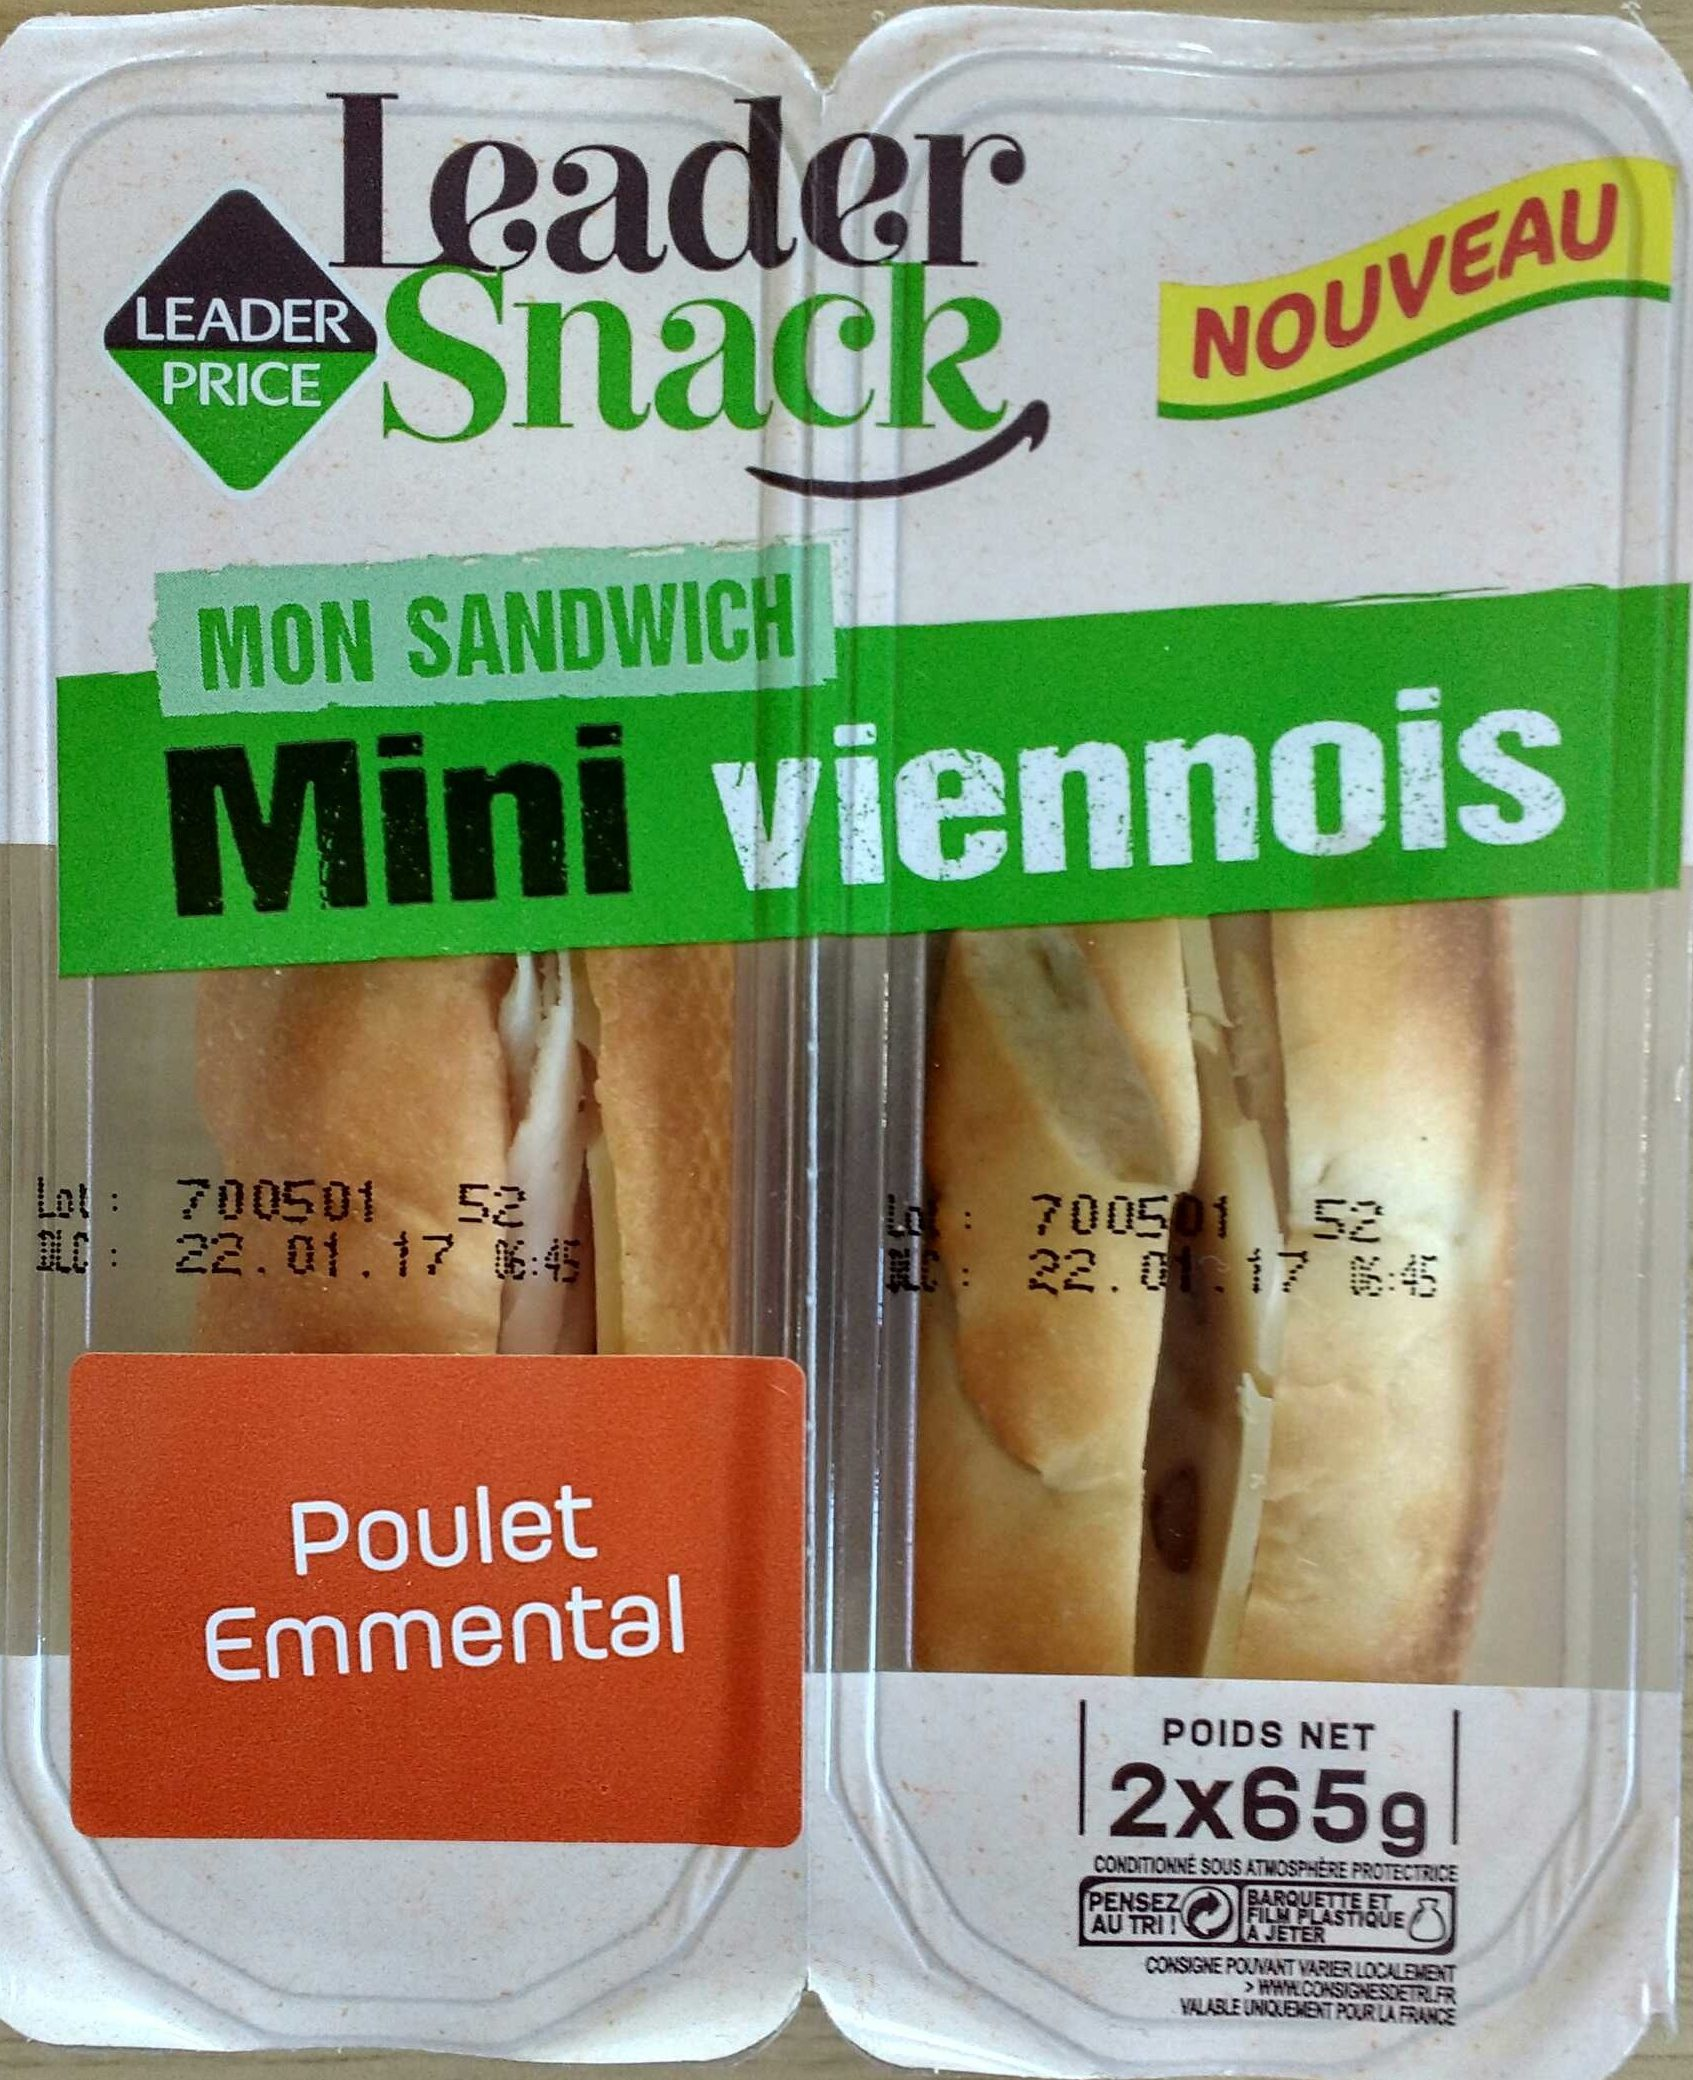 Mini viennois - Poulet emmental - Product